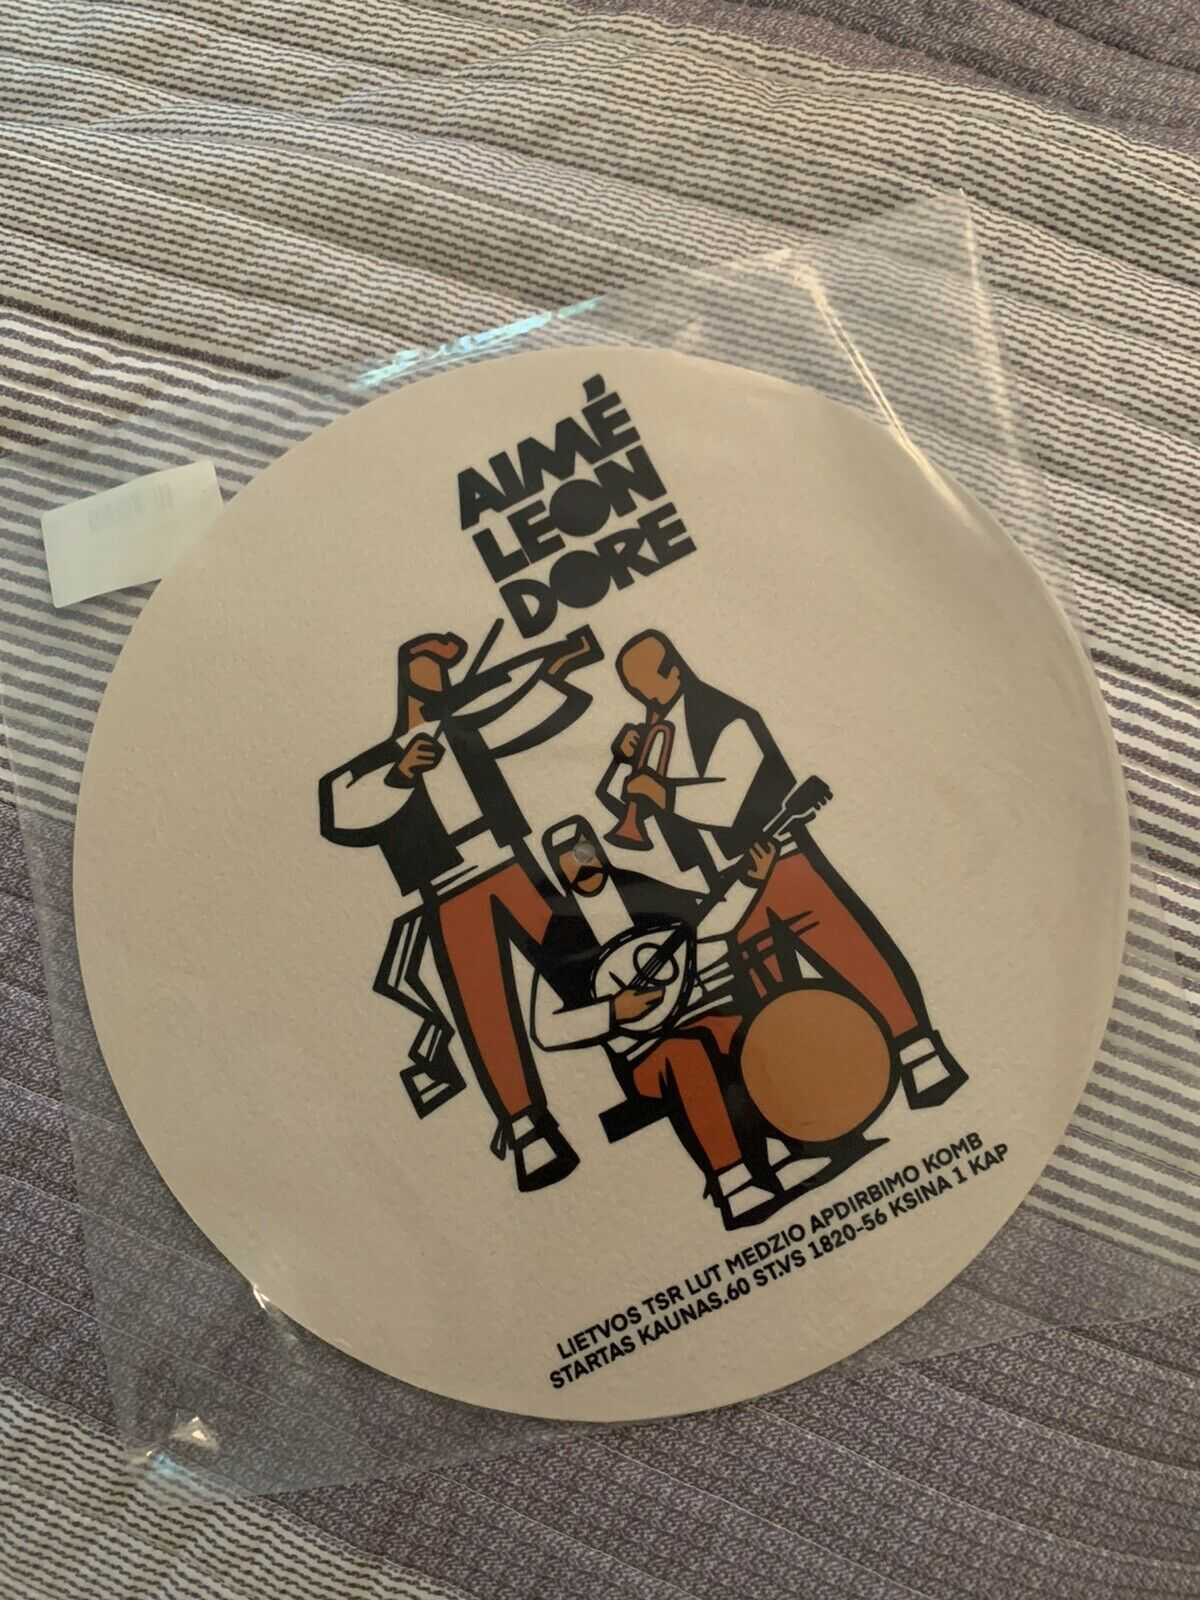 aime leon dore graphic slip mat band FW21 sold out